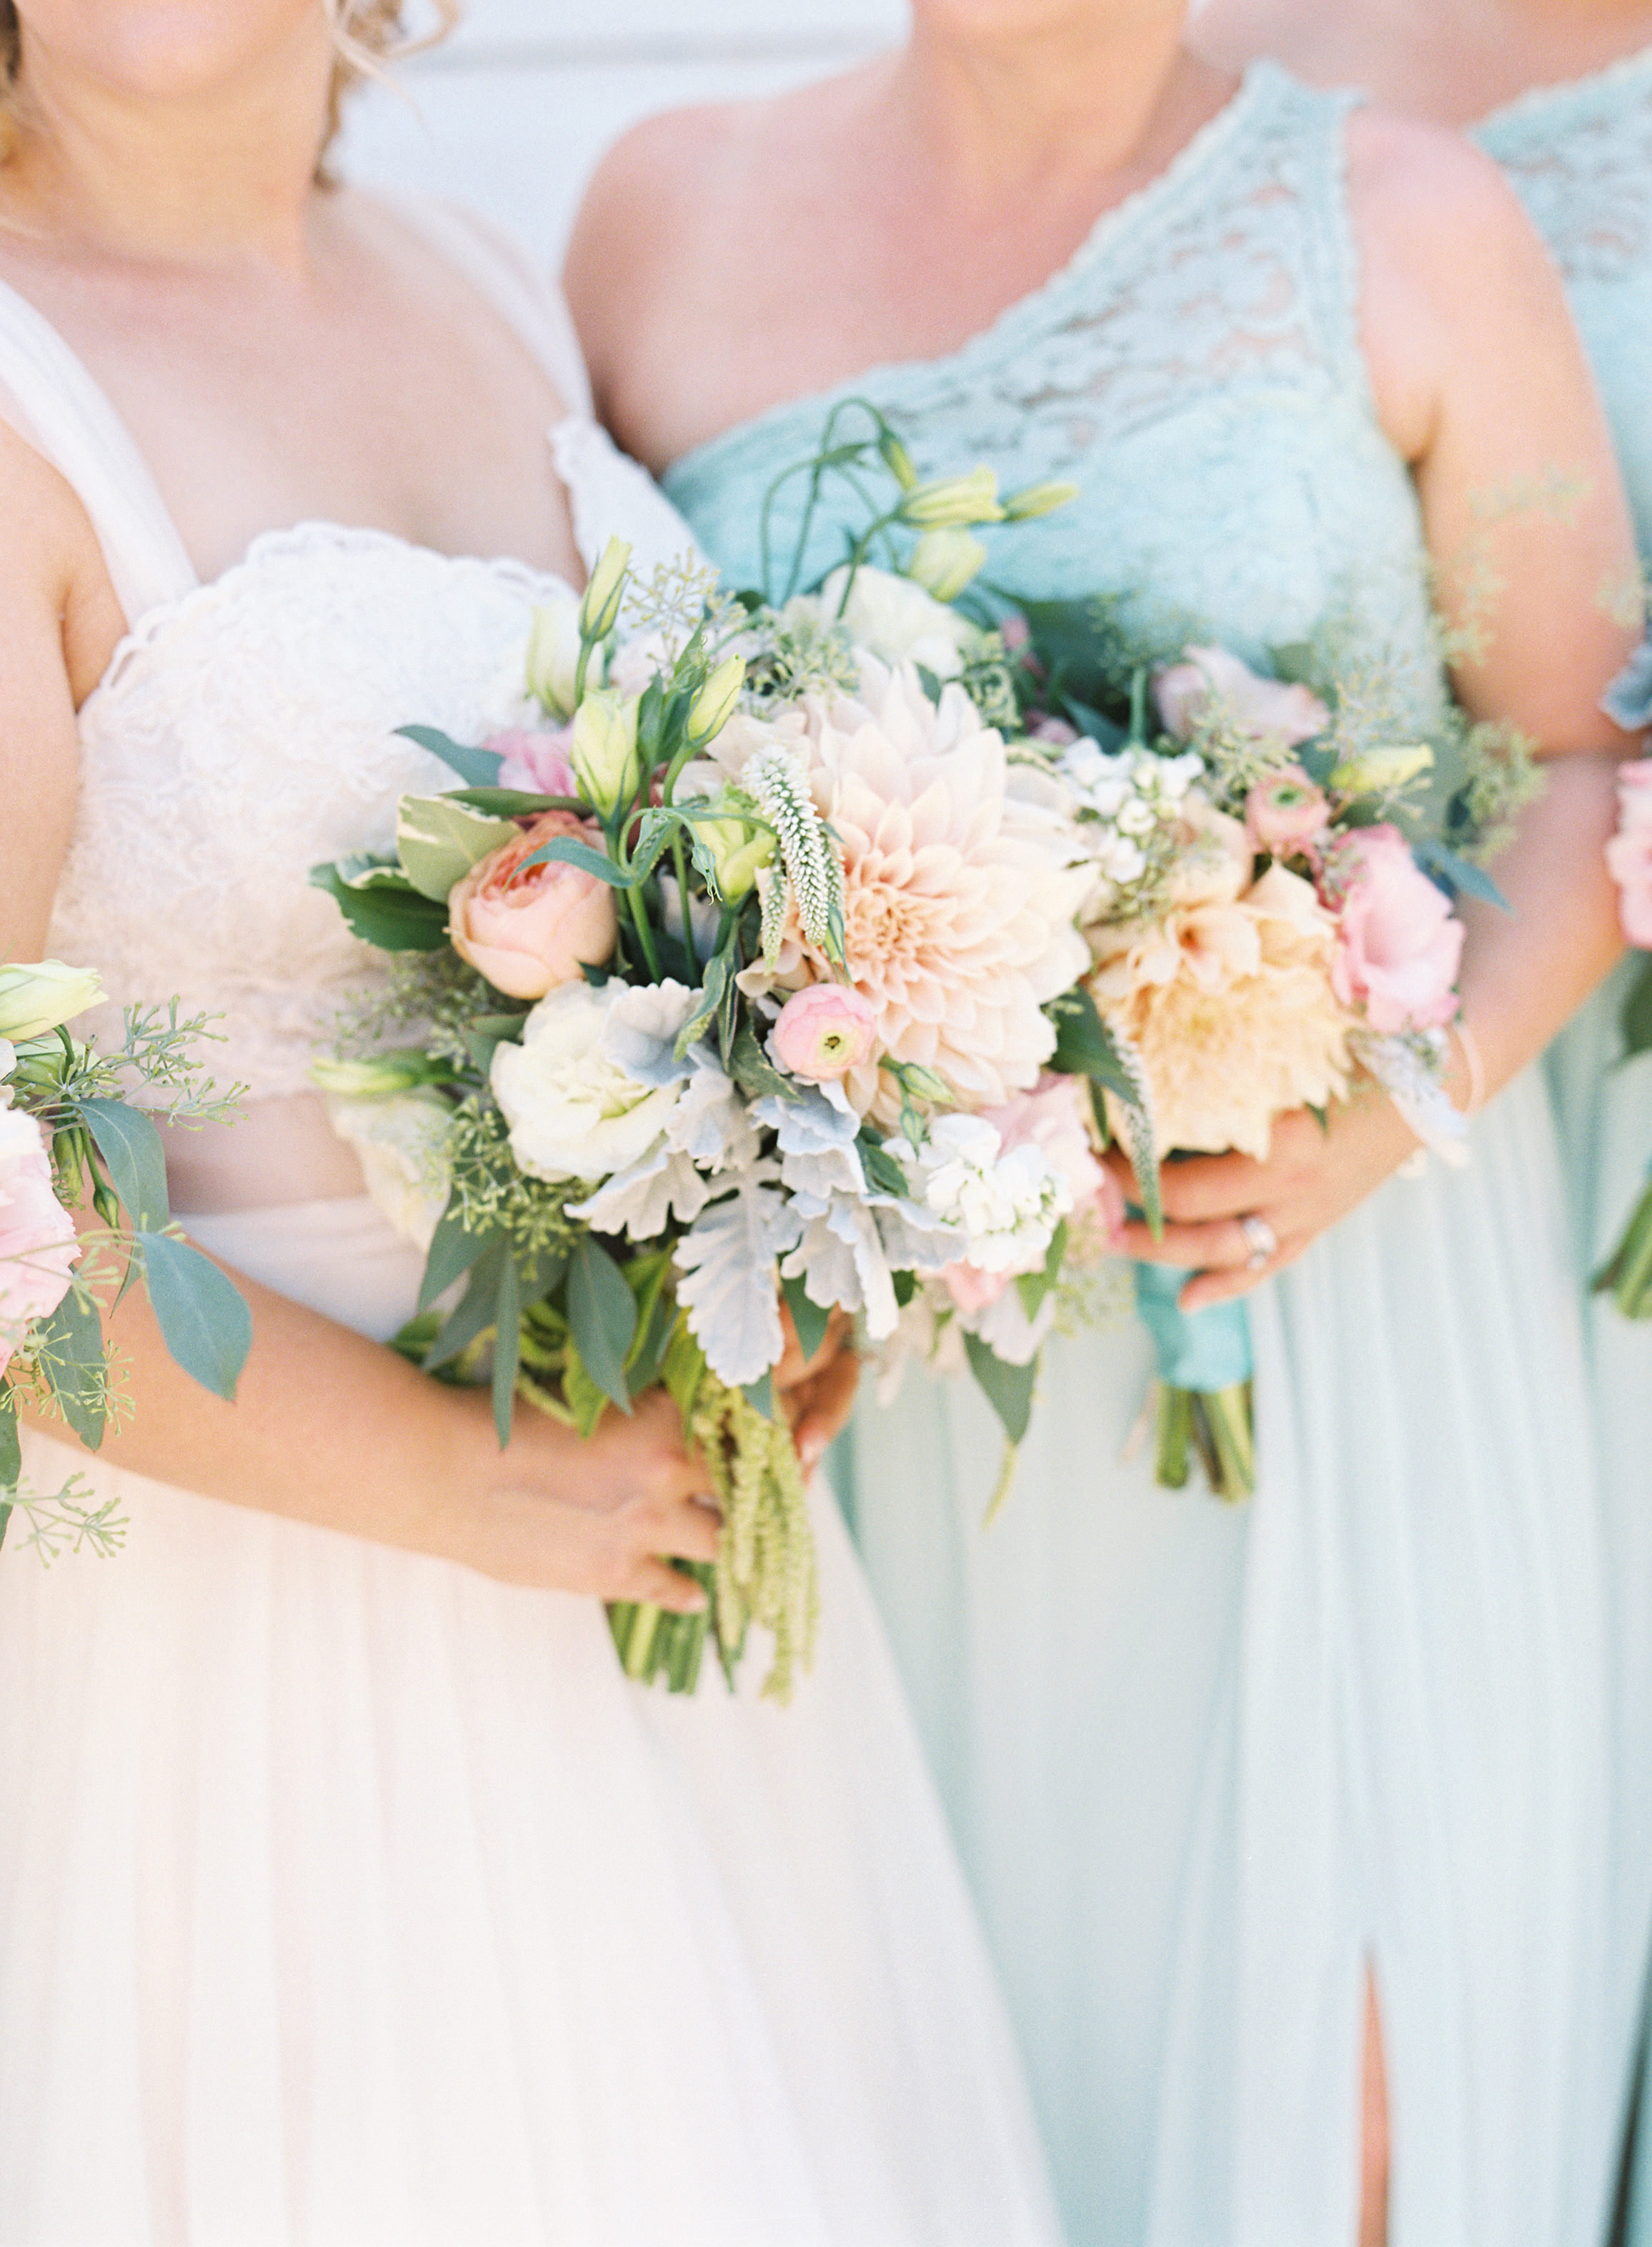 southern-inspired-wedding-at-ravenswood-historic-site-005.jpg